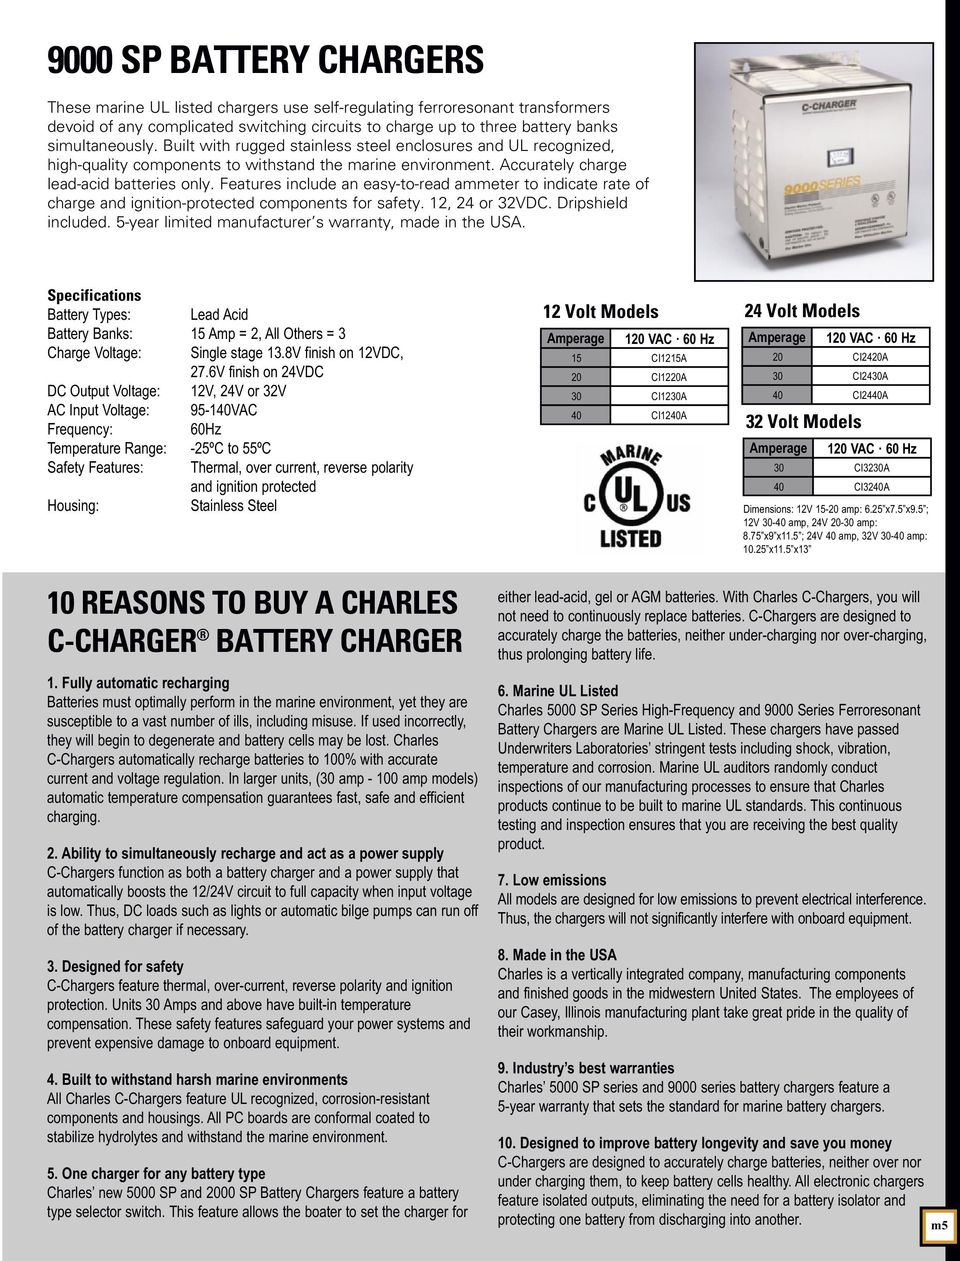 Marine Solutions Pdf Precise Low Voltage Power Supply This Eliminate Include An Easy To Read Ammeter Indicate Rate Of Charge And Ignition